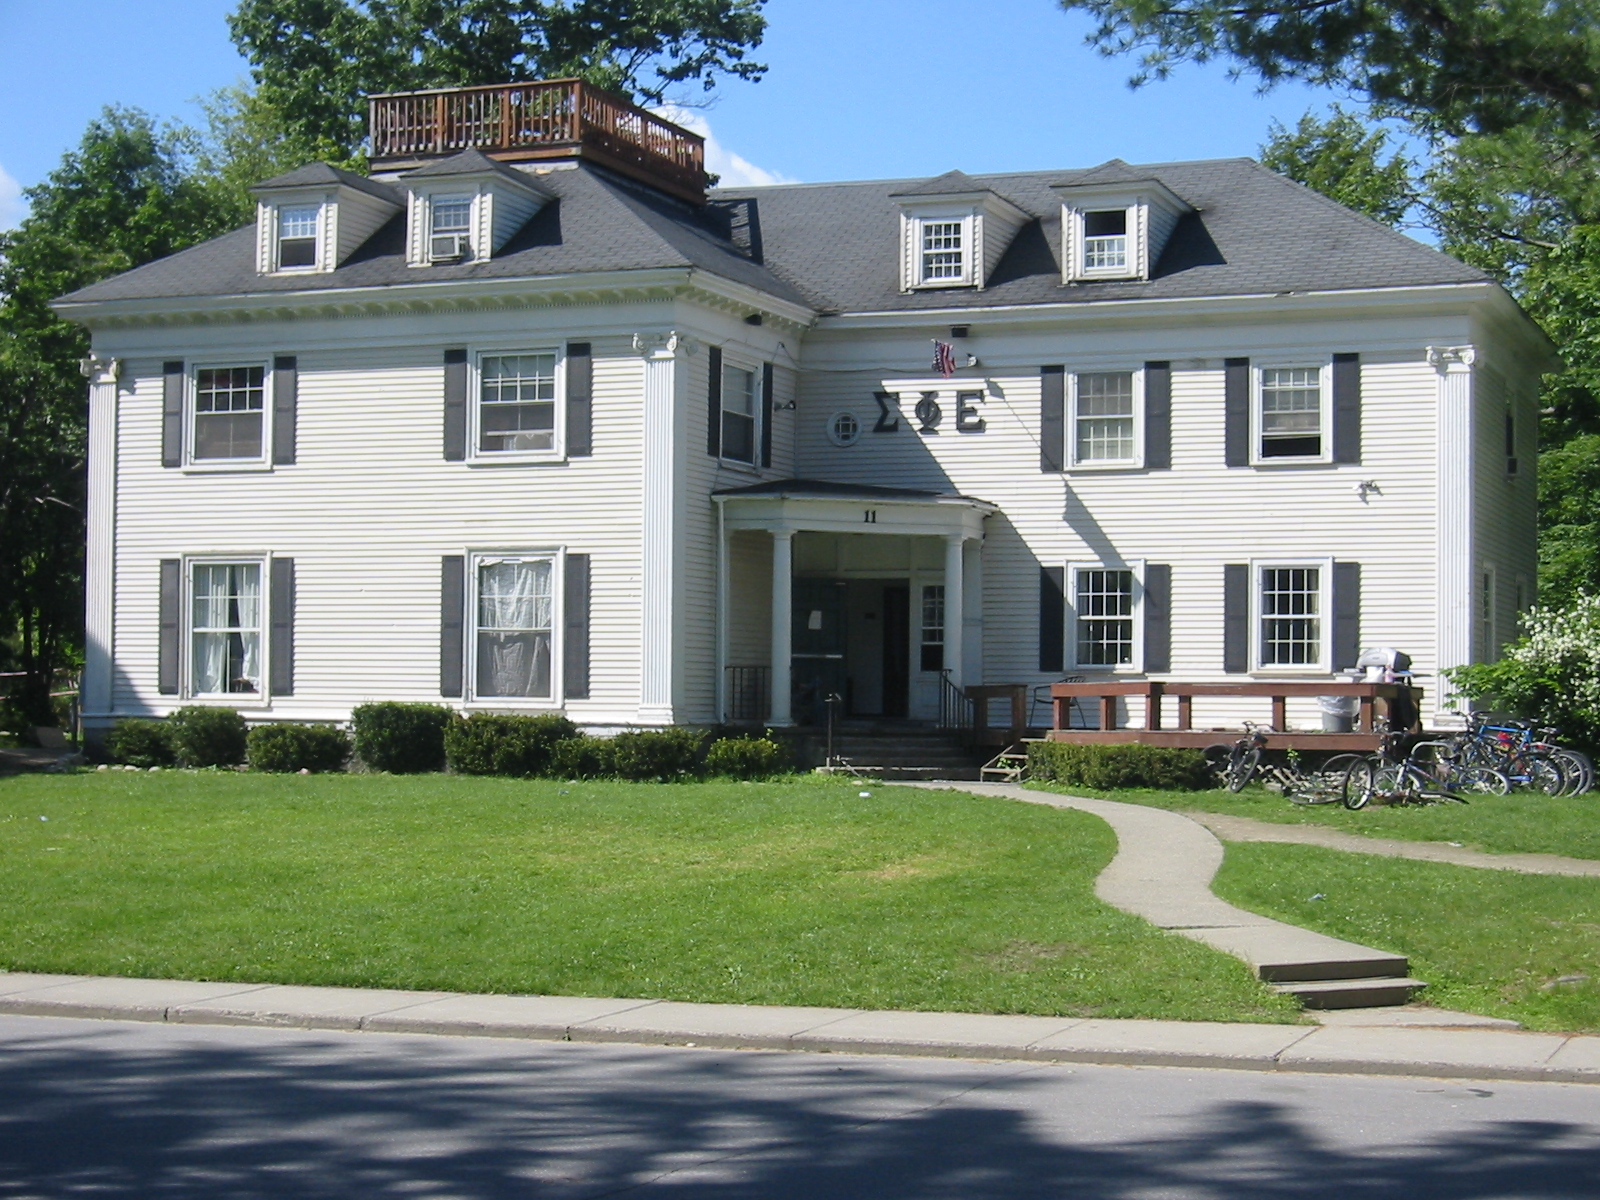 Historic Sigma Phi Epsilon House at Dartmouth before demolition